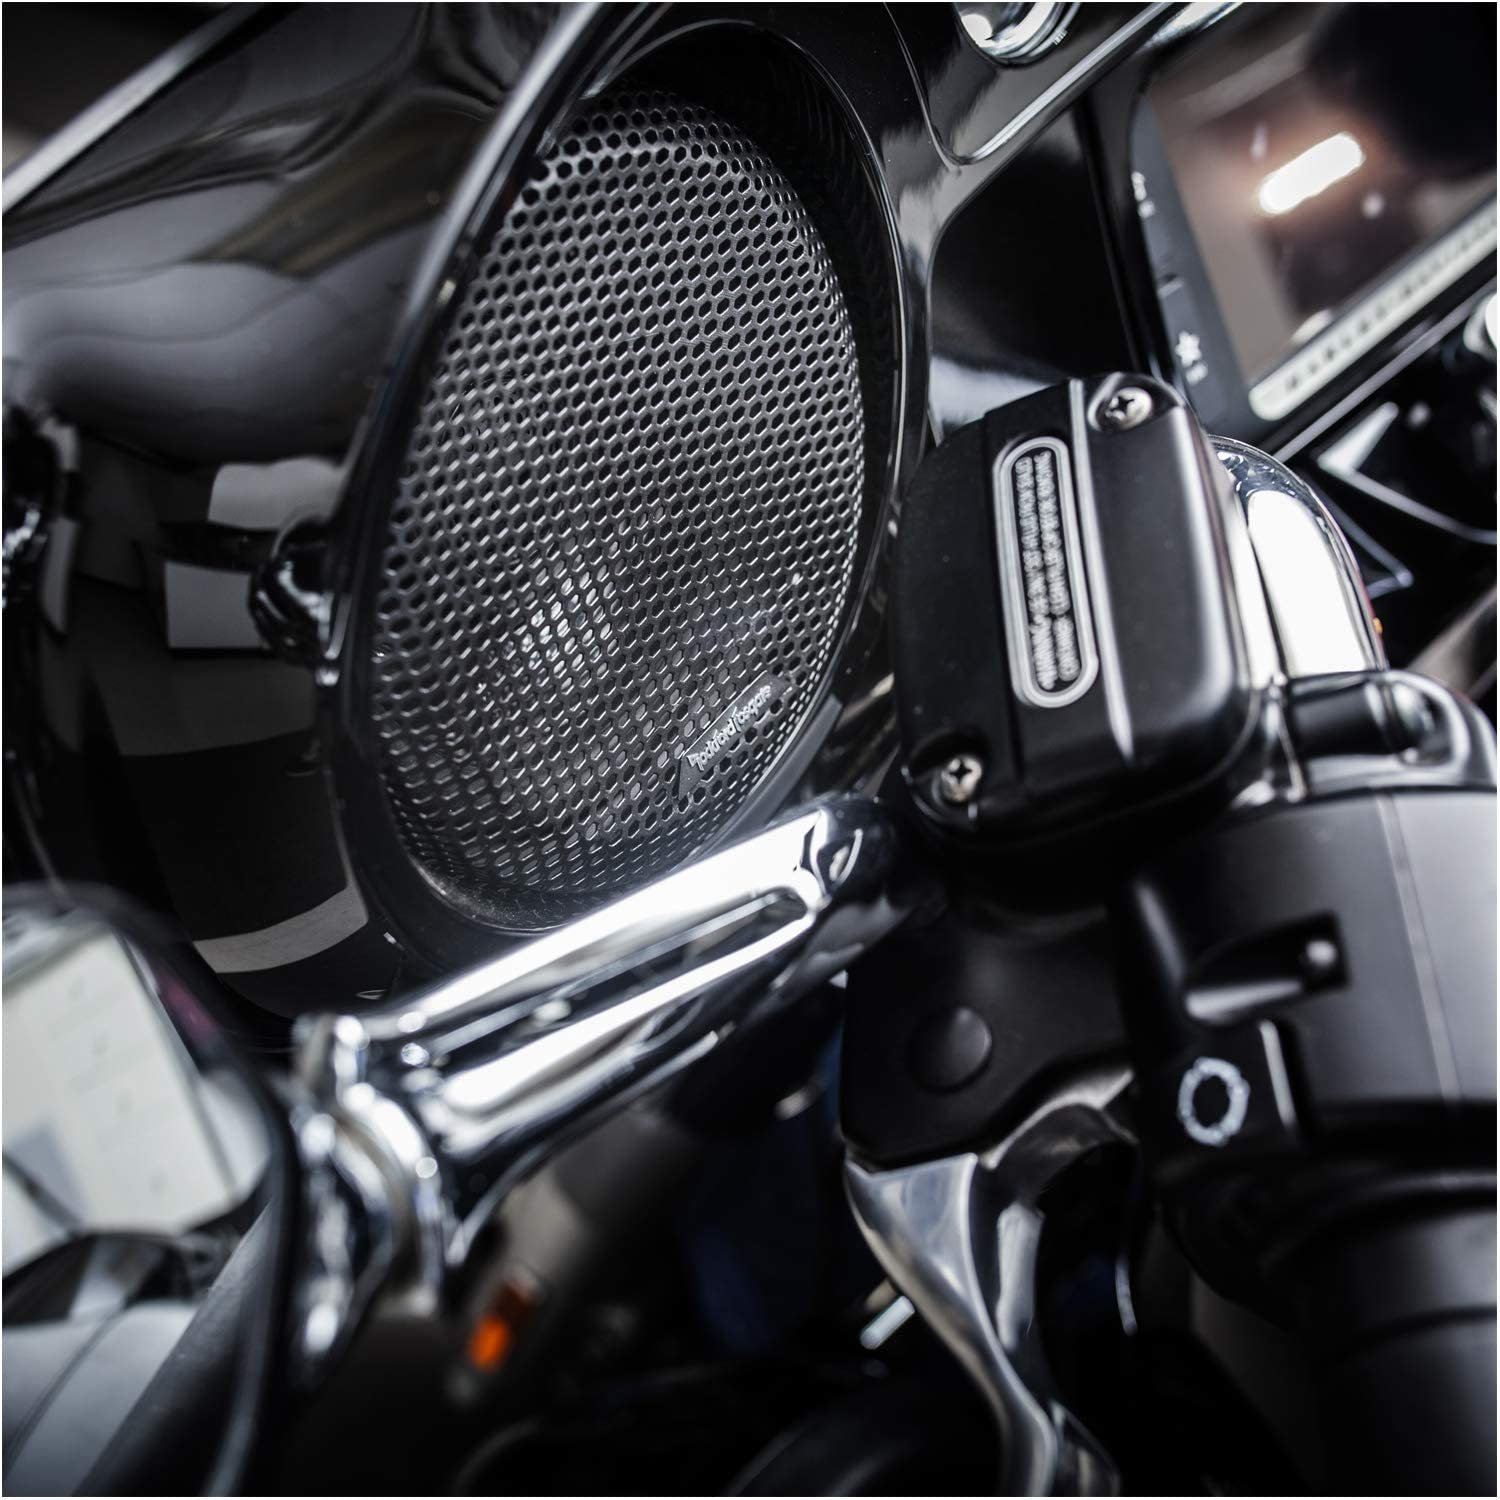 Best Speakers for Harley Davidson